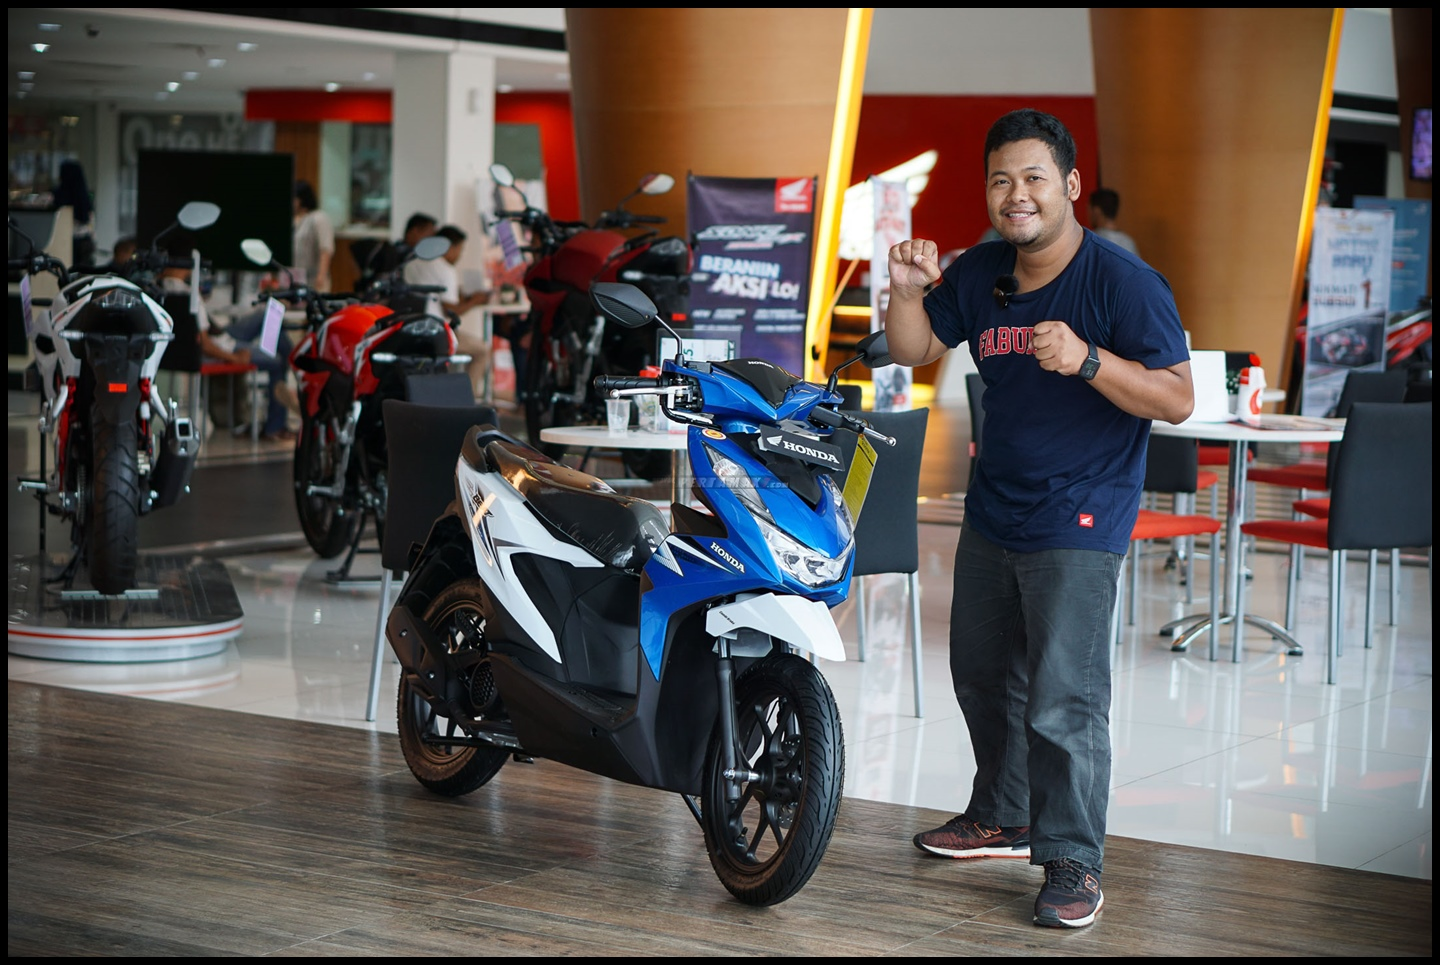 Bertemu Honda All New BEAT 2020 Putih Biru Jogja P7